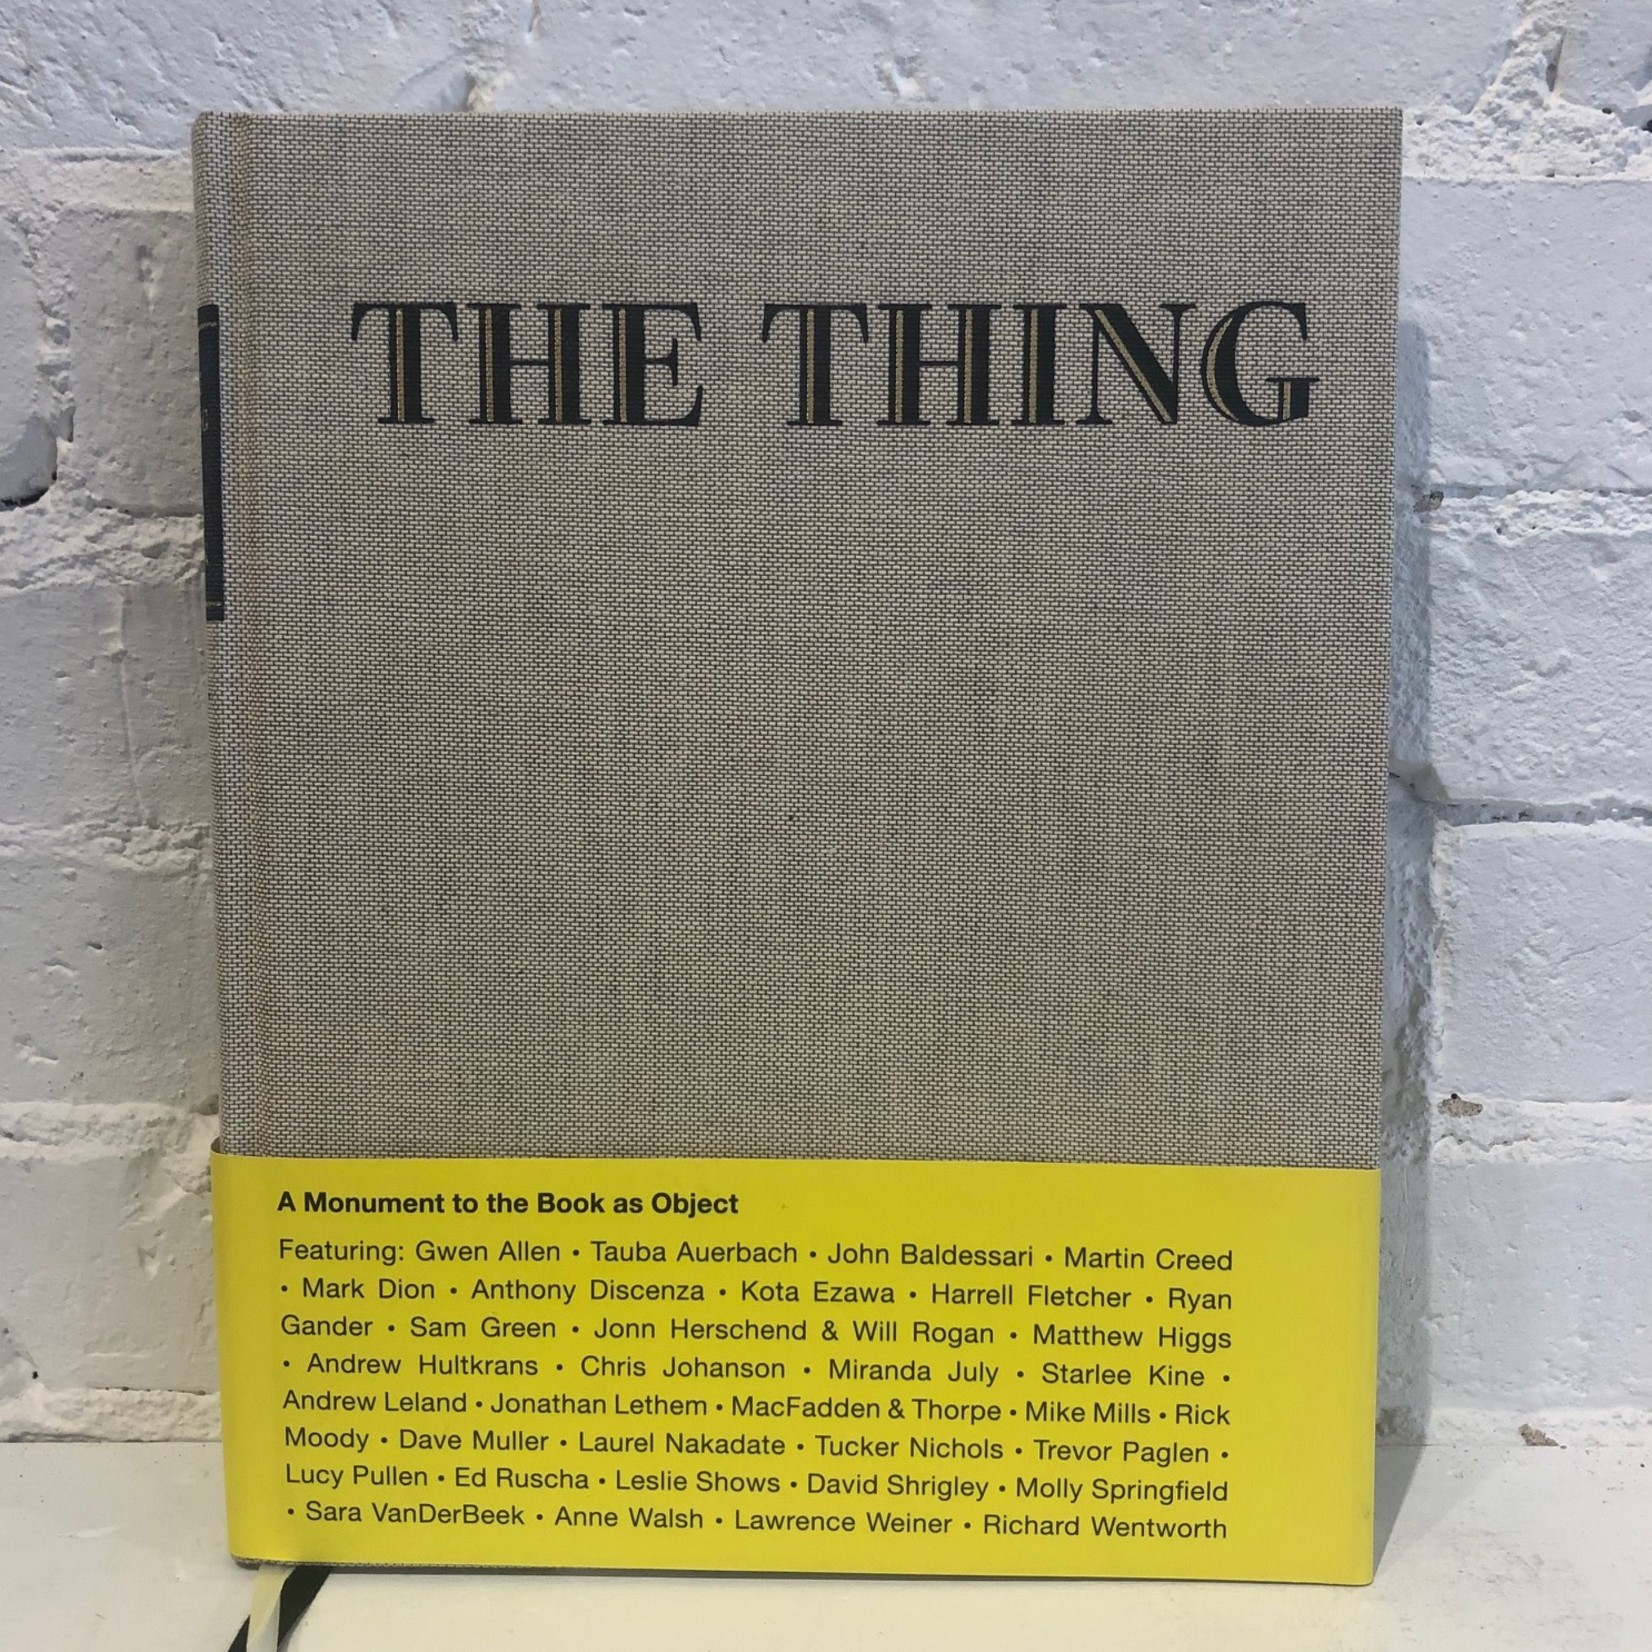 The Thing: A Monument to the Book as Object